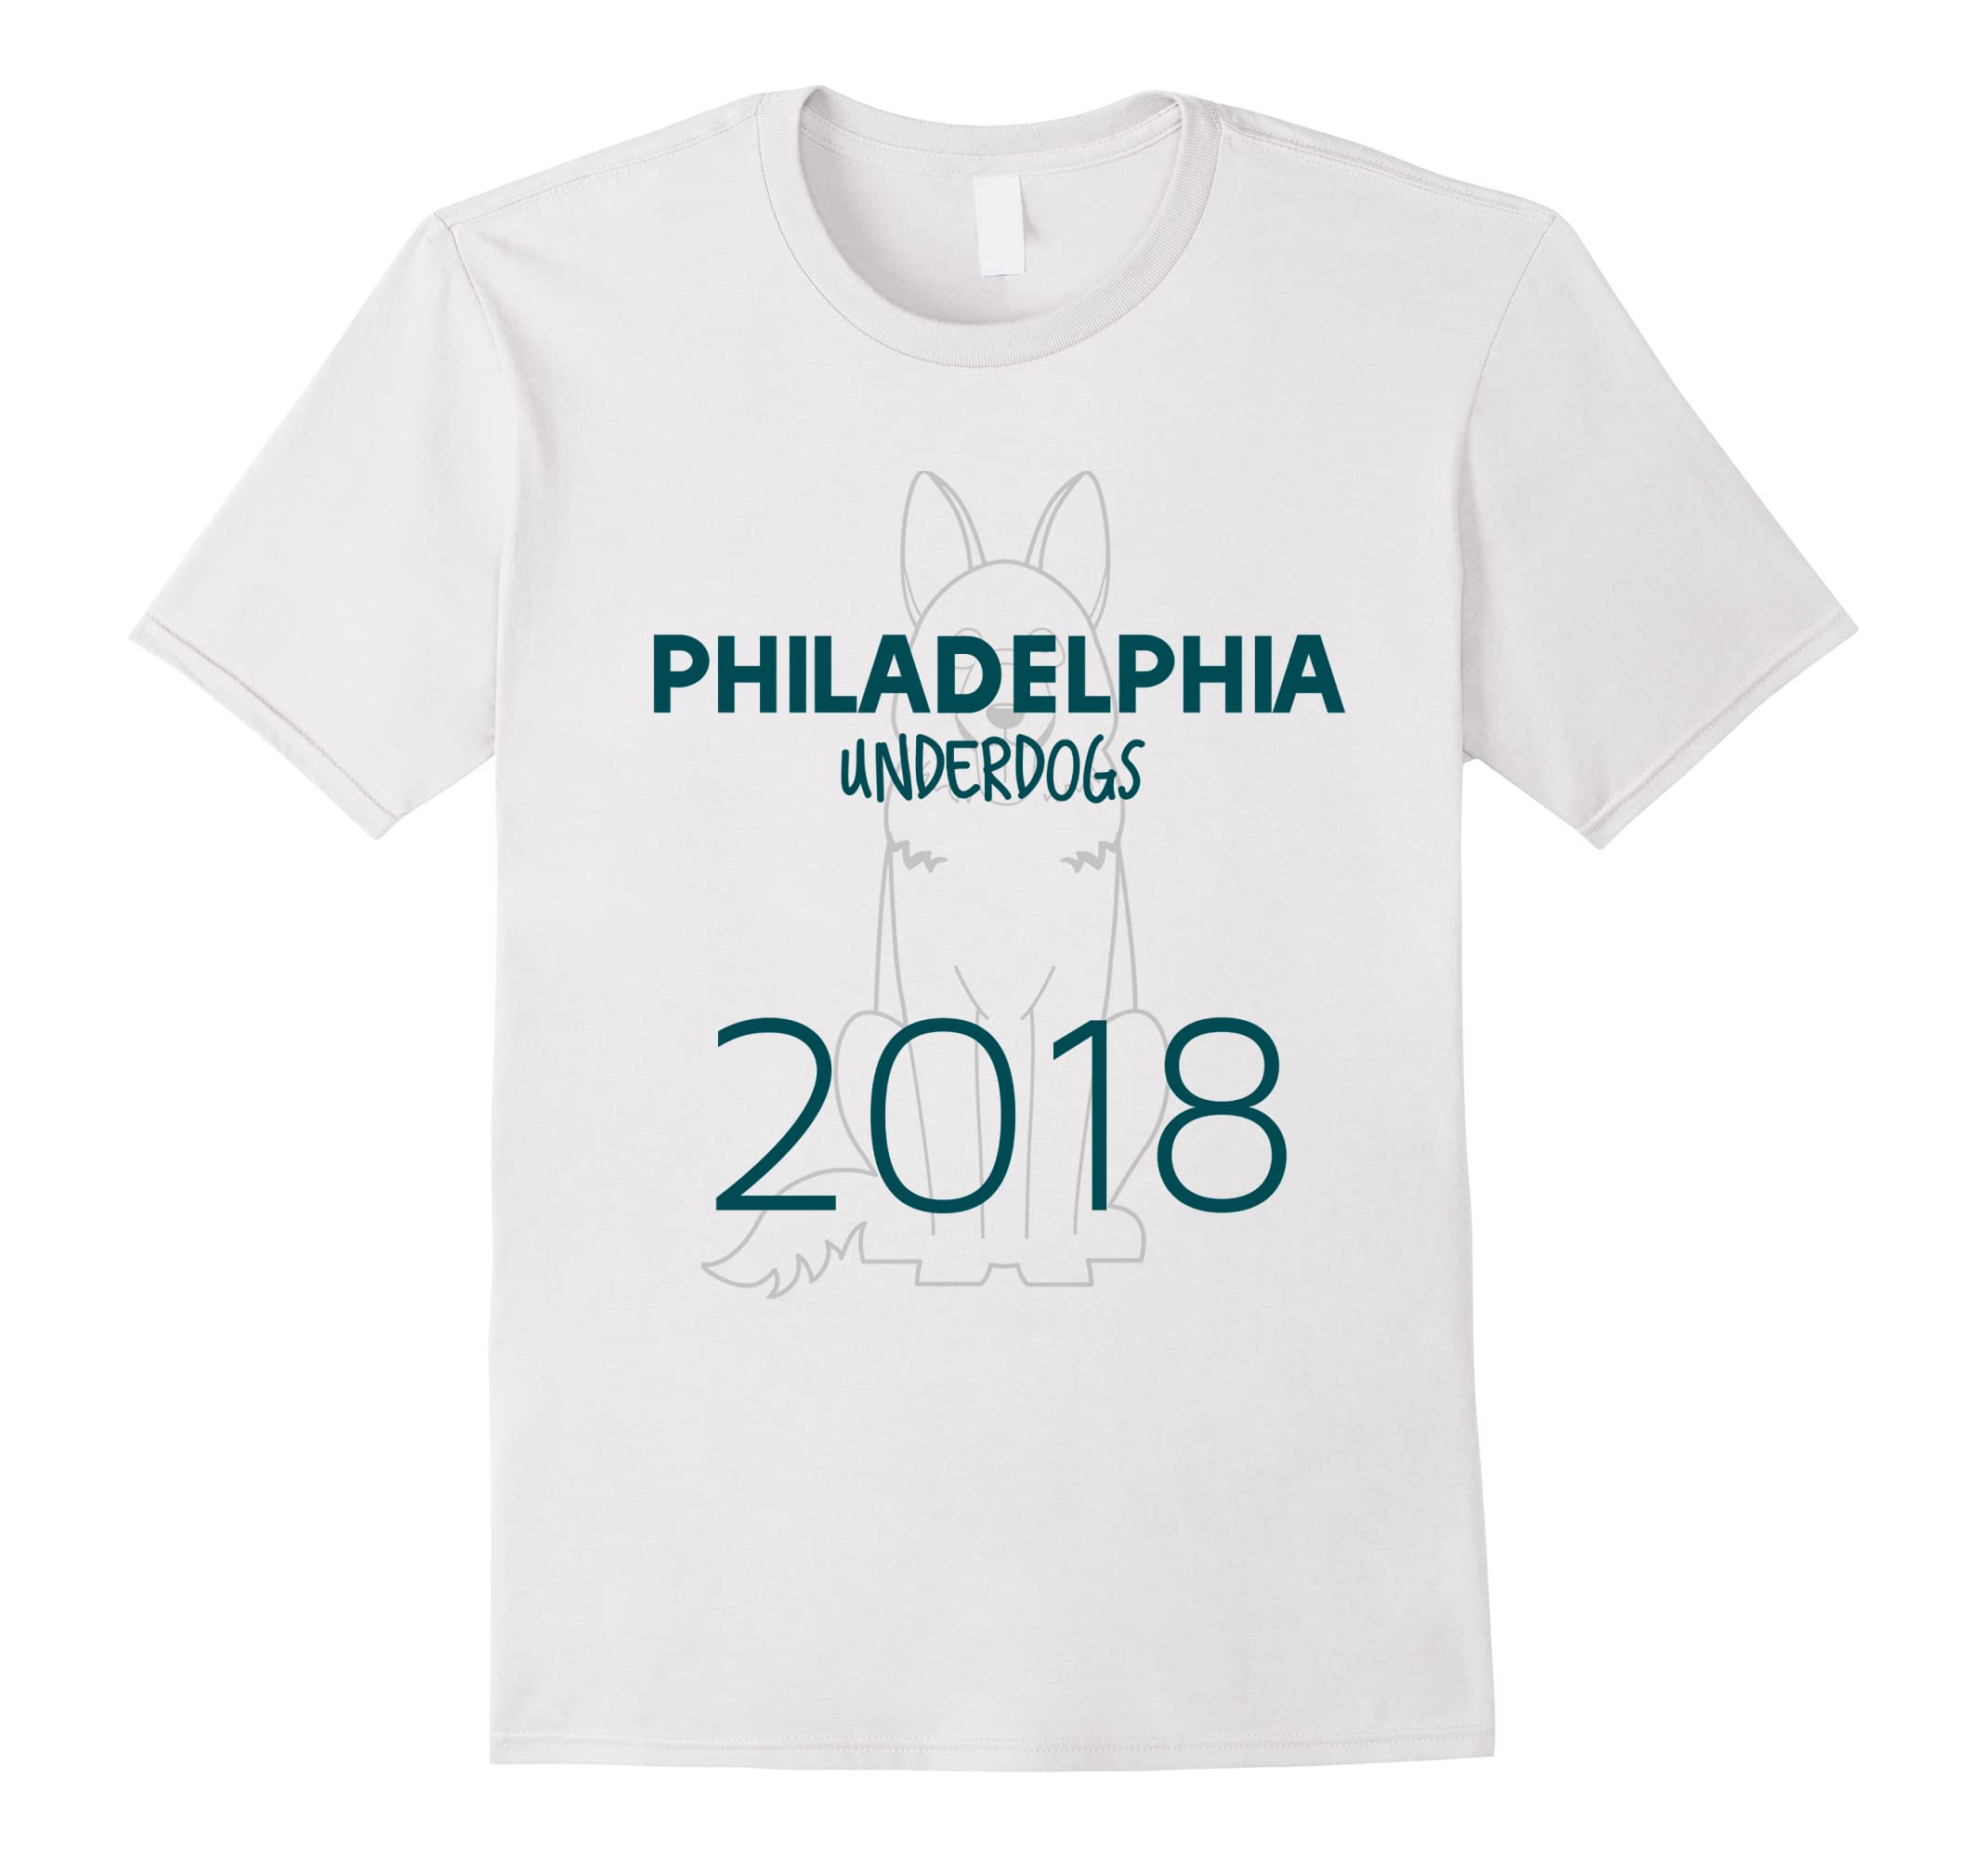 Philly Philadelphia Underdogs 2018 Game Day T-Shirt-ah my shirt one gift 5af8b304b